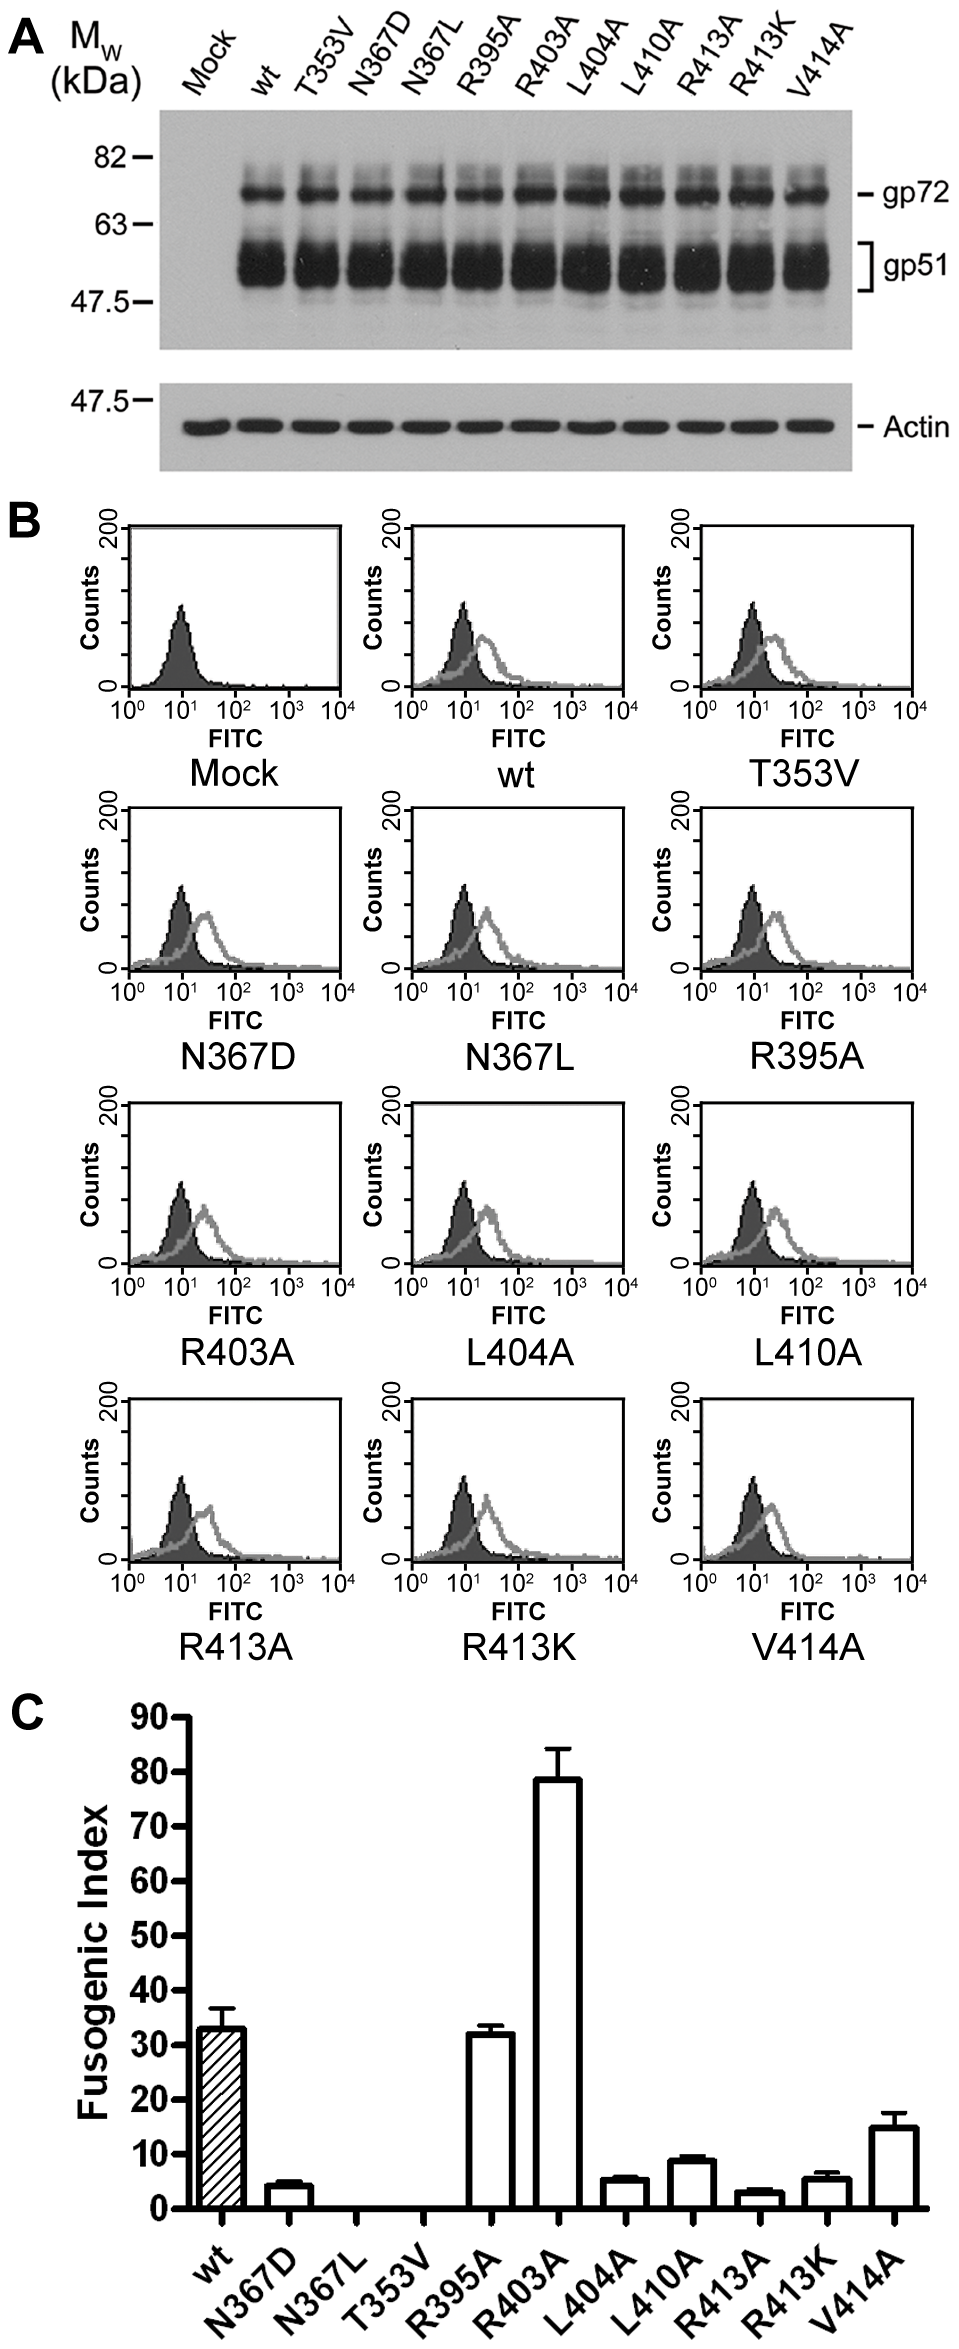 Expression and fusogenicity of mutant BLV envelopes.